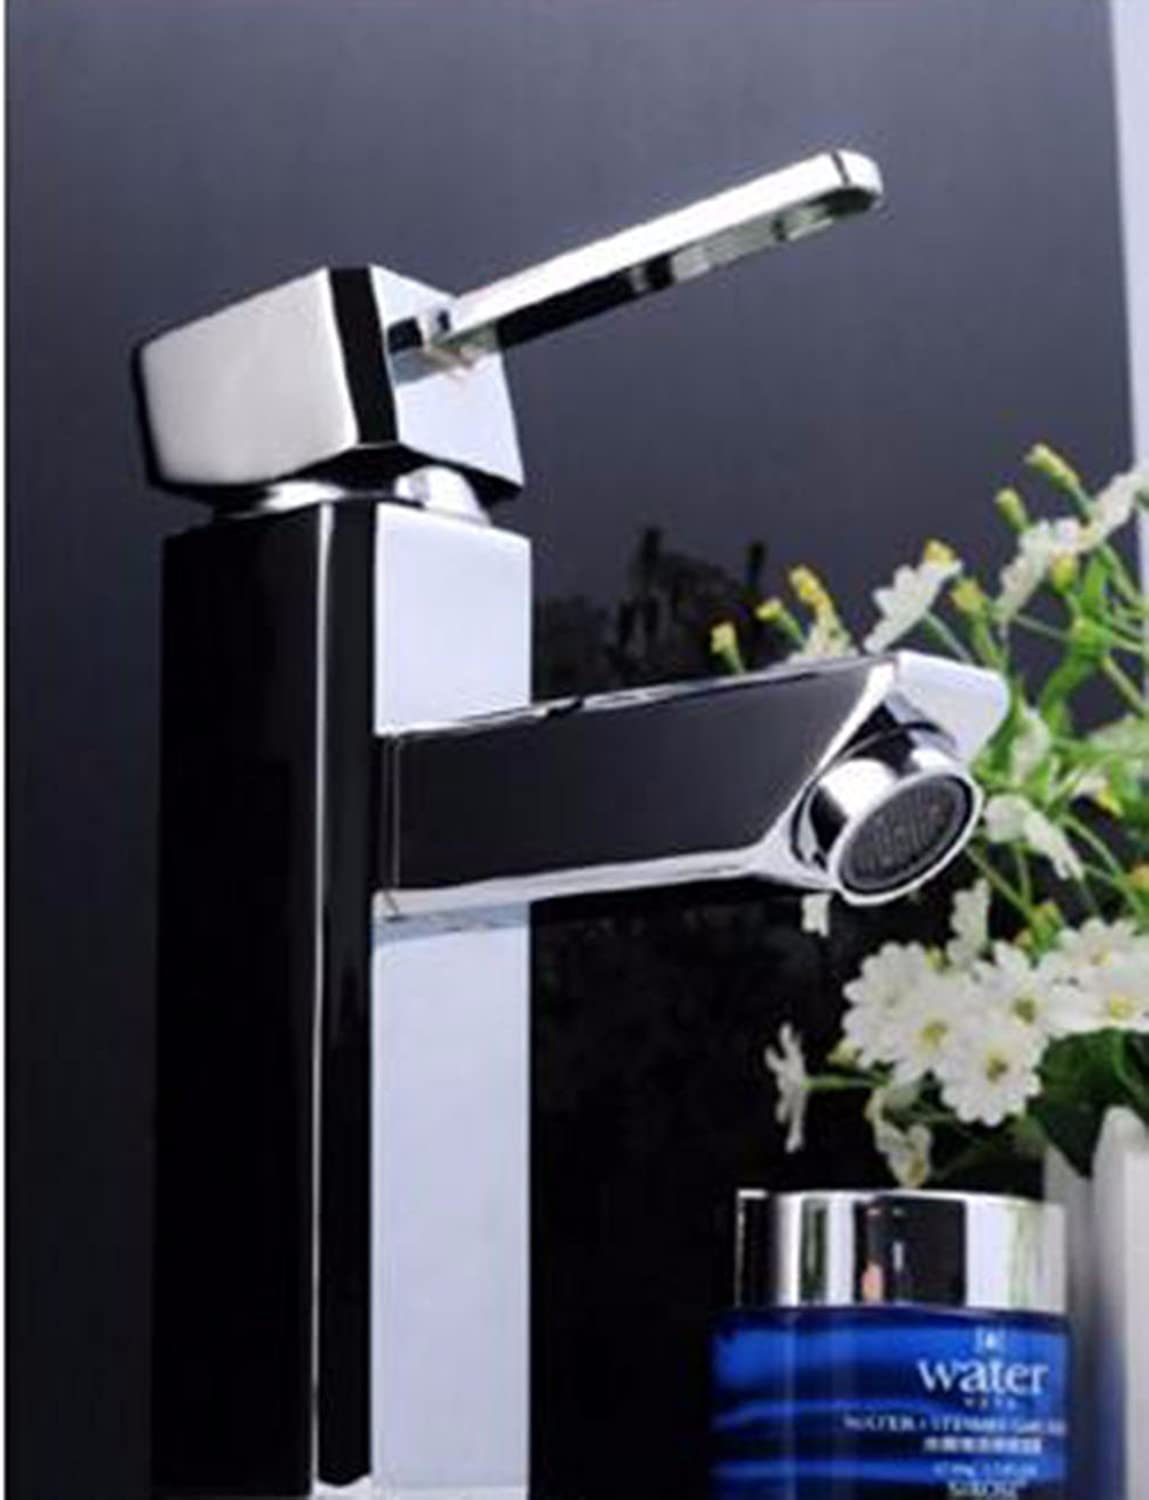 LHbox Basin Mixer Tap Bathroom Sink Faucet The copper basin, bathroom cabinets and cold water faucet, lowered basin basin sink single hole Faucet